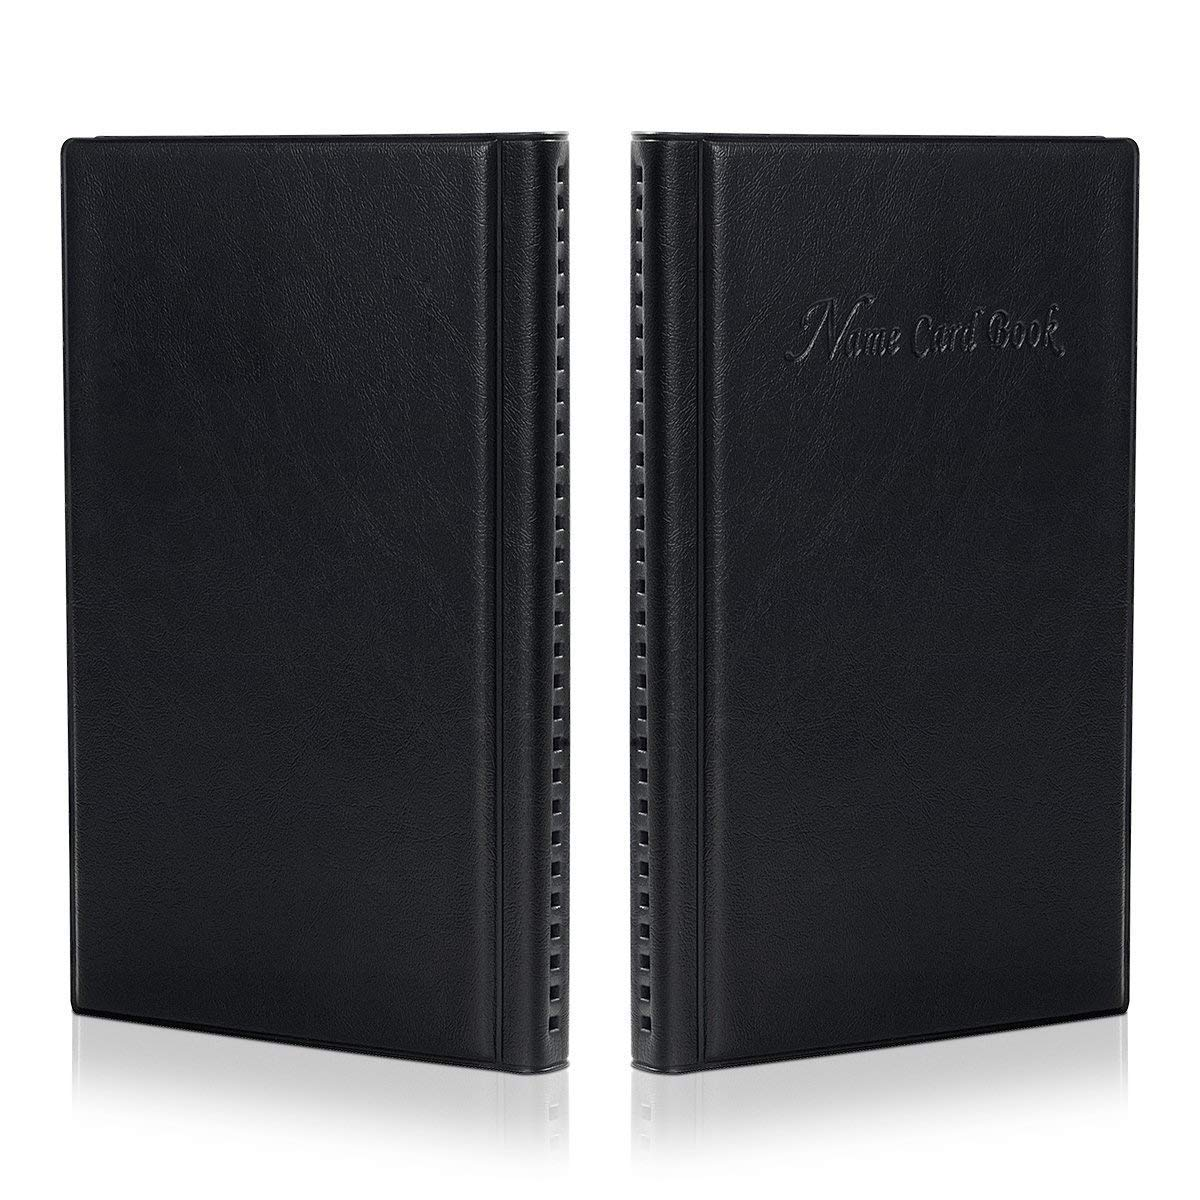 PU Leather Hamosky Business Card Holder Organizer Book 2 Pack Total for 300 Business Car